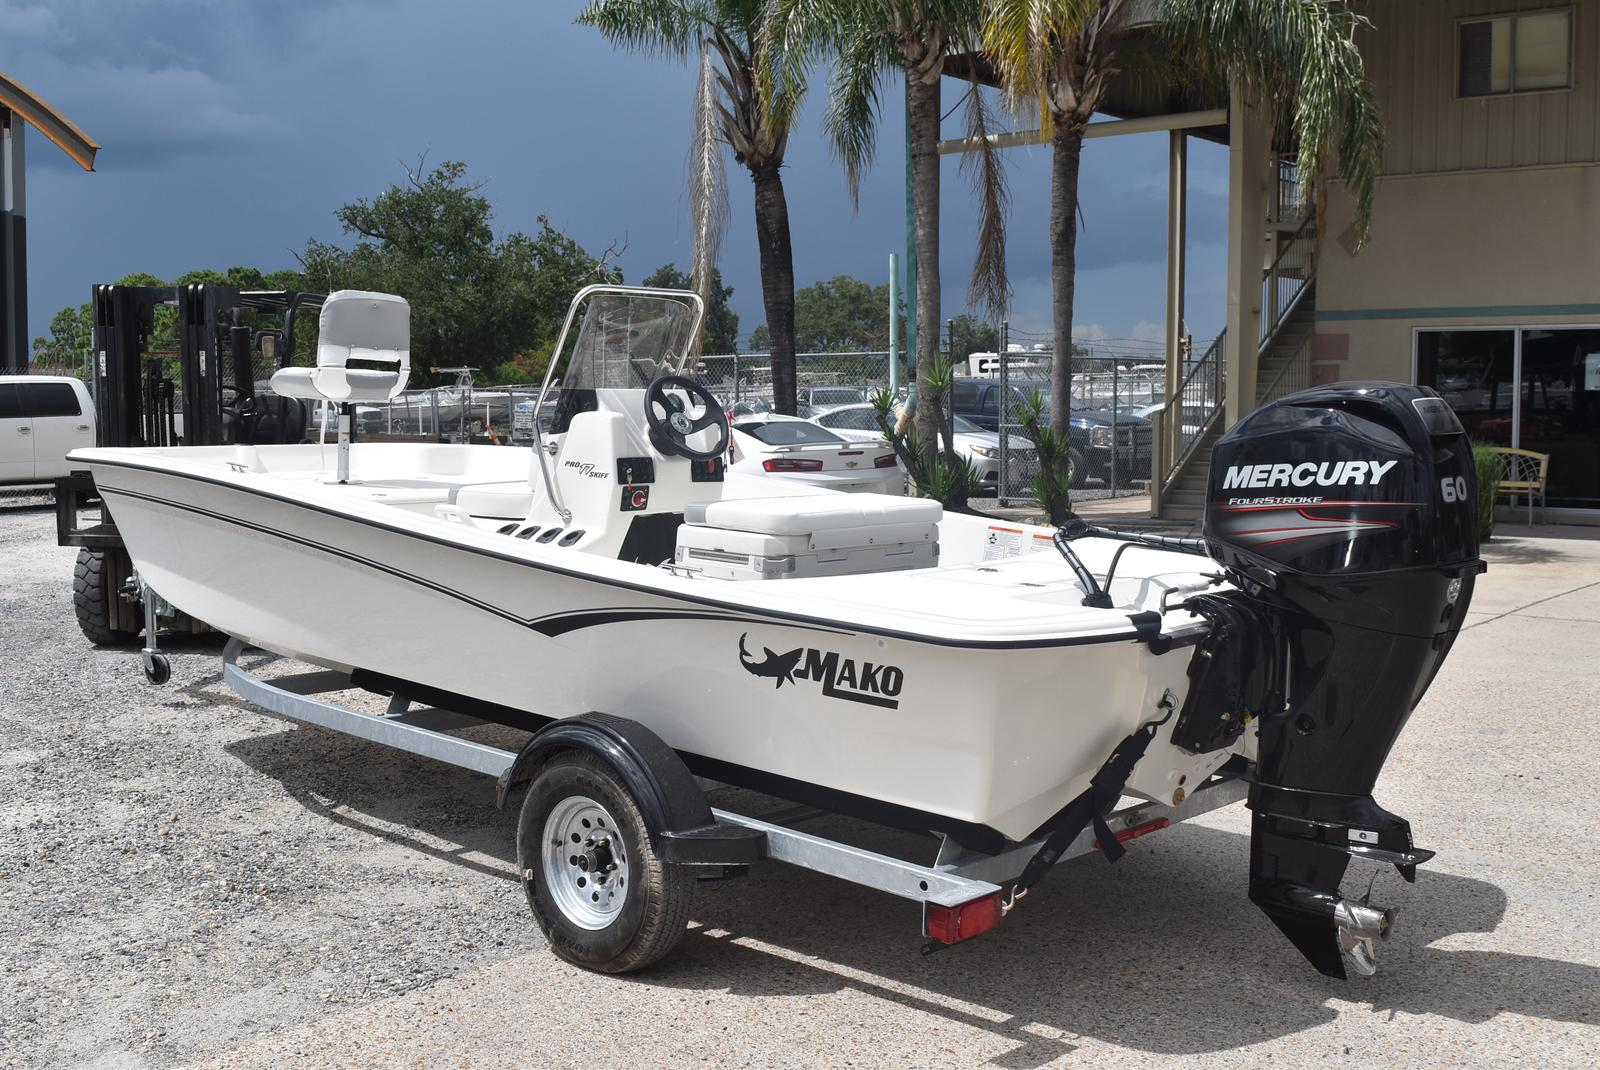 2020 Mako boat for sale, model of the boat is Pro Skiff 17, 75 ELPT & Image # 193 of 702